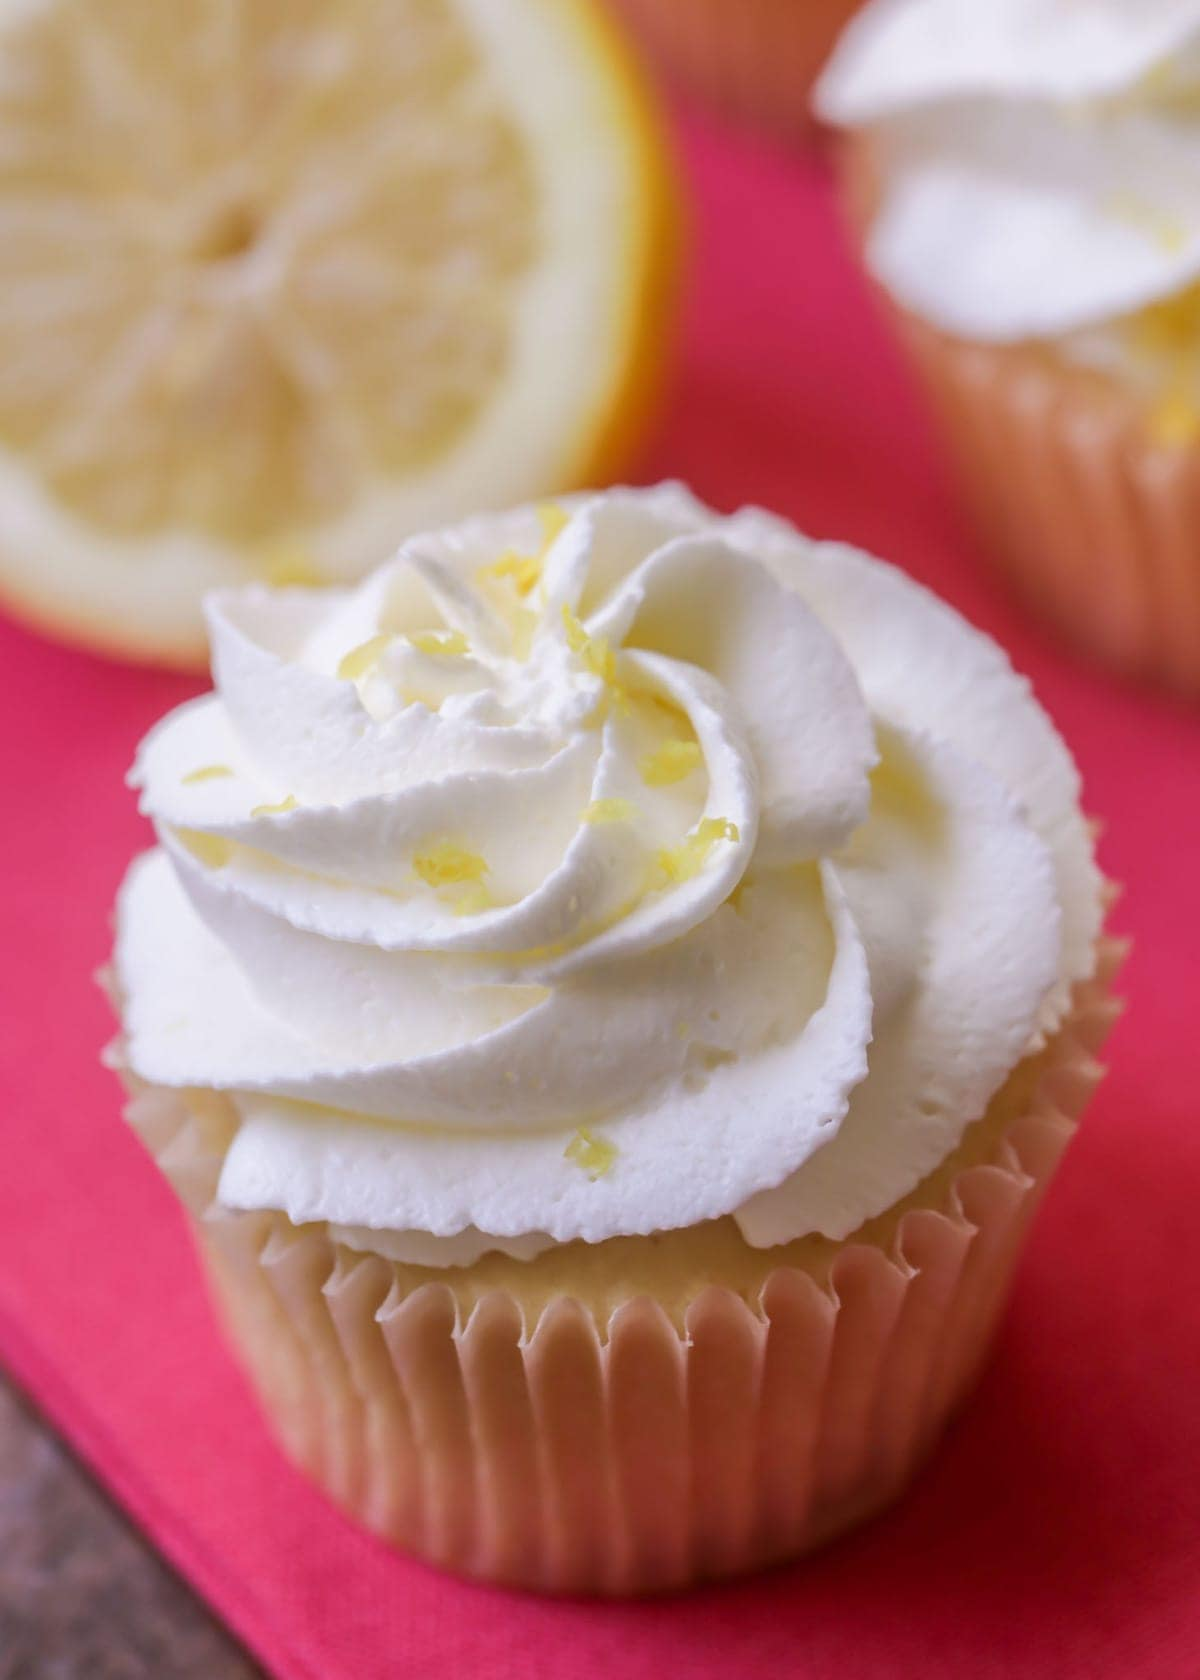 Soft Lemon Cupcakes with a delicious homemade lemon cream frosting. The perfect summer treat!